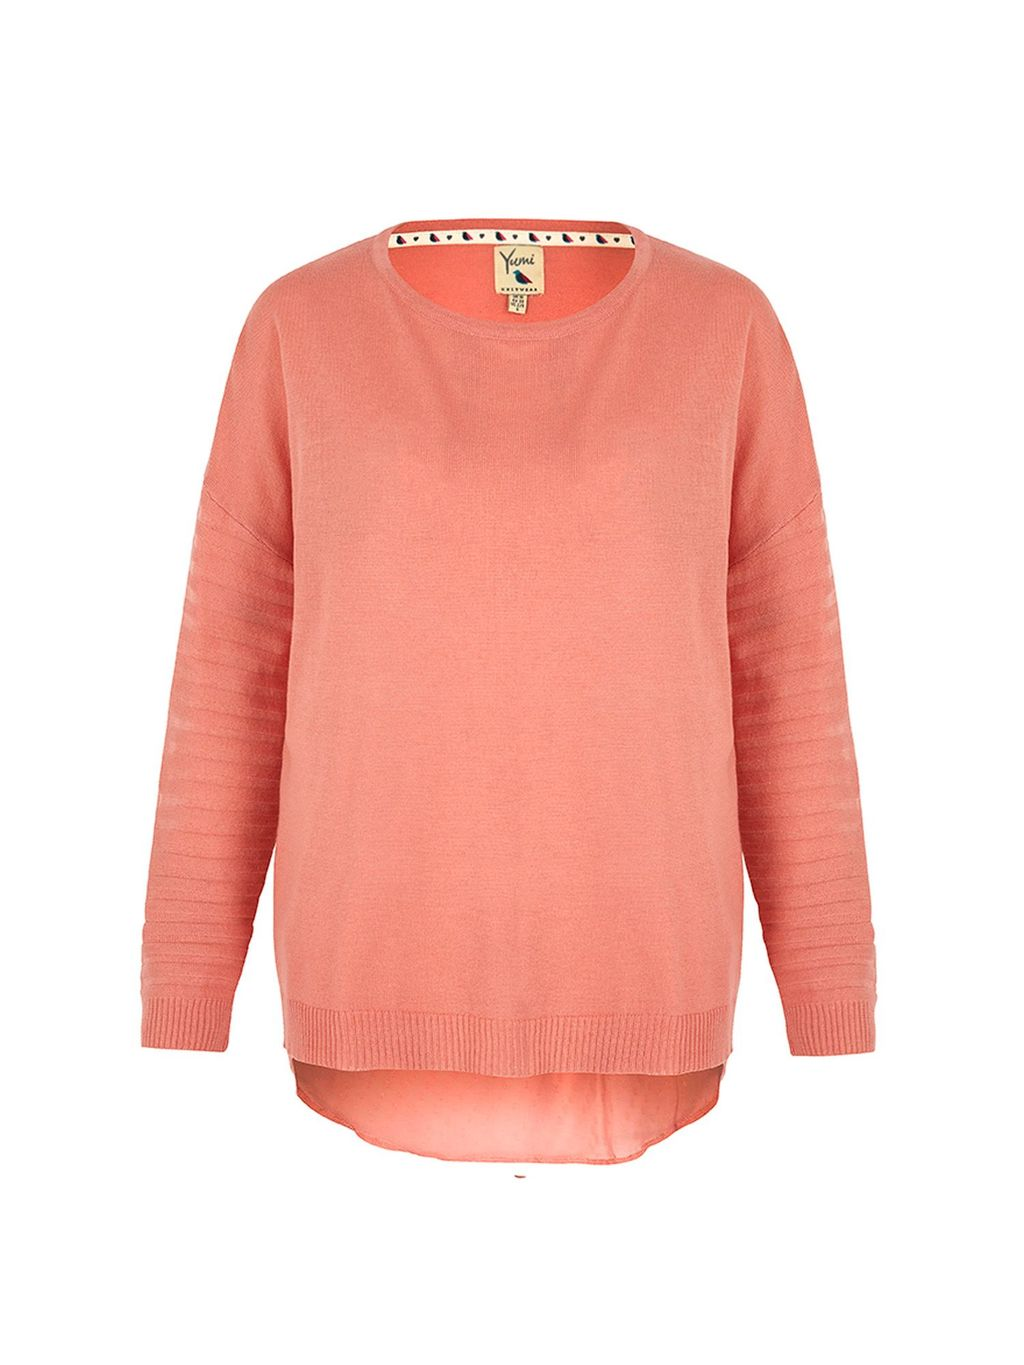 Sheer Back Jumper, Pink - neckline: round neck; pattern: plain; style: standard; predominant colour: pink; occasions: casual, creative work; length: standard; fibres: polyester/polyamide - mix; fit: standard fit; back detail: longer hem at back than at front; sleeve length: long sleeve; sleeve style: standard; texture group: knits/crochet; pattern type: knitted - fine stitch; season: s/s 2016; wardrobe: highlight